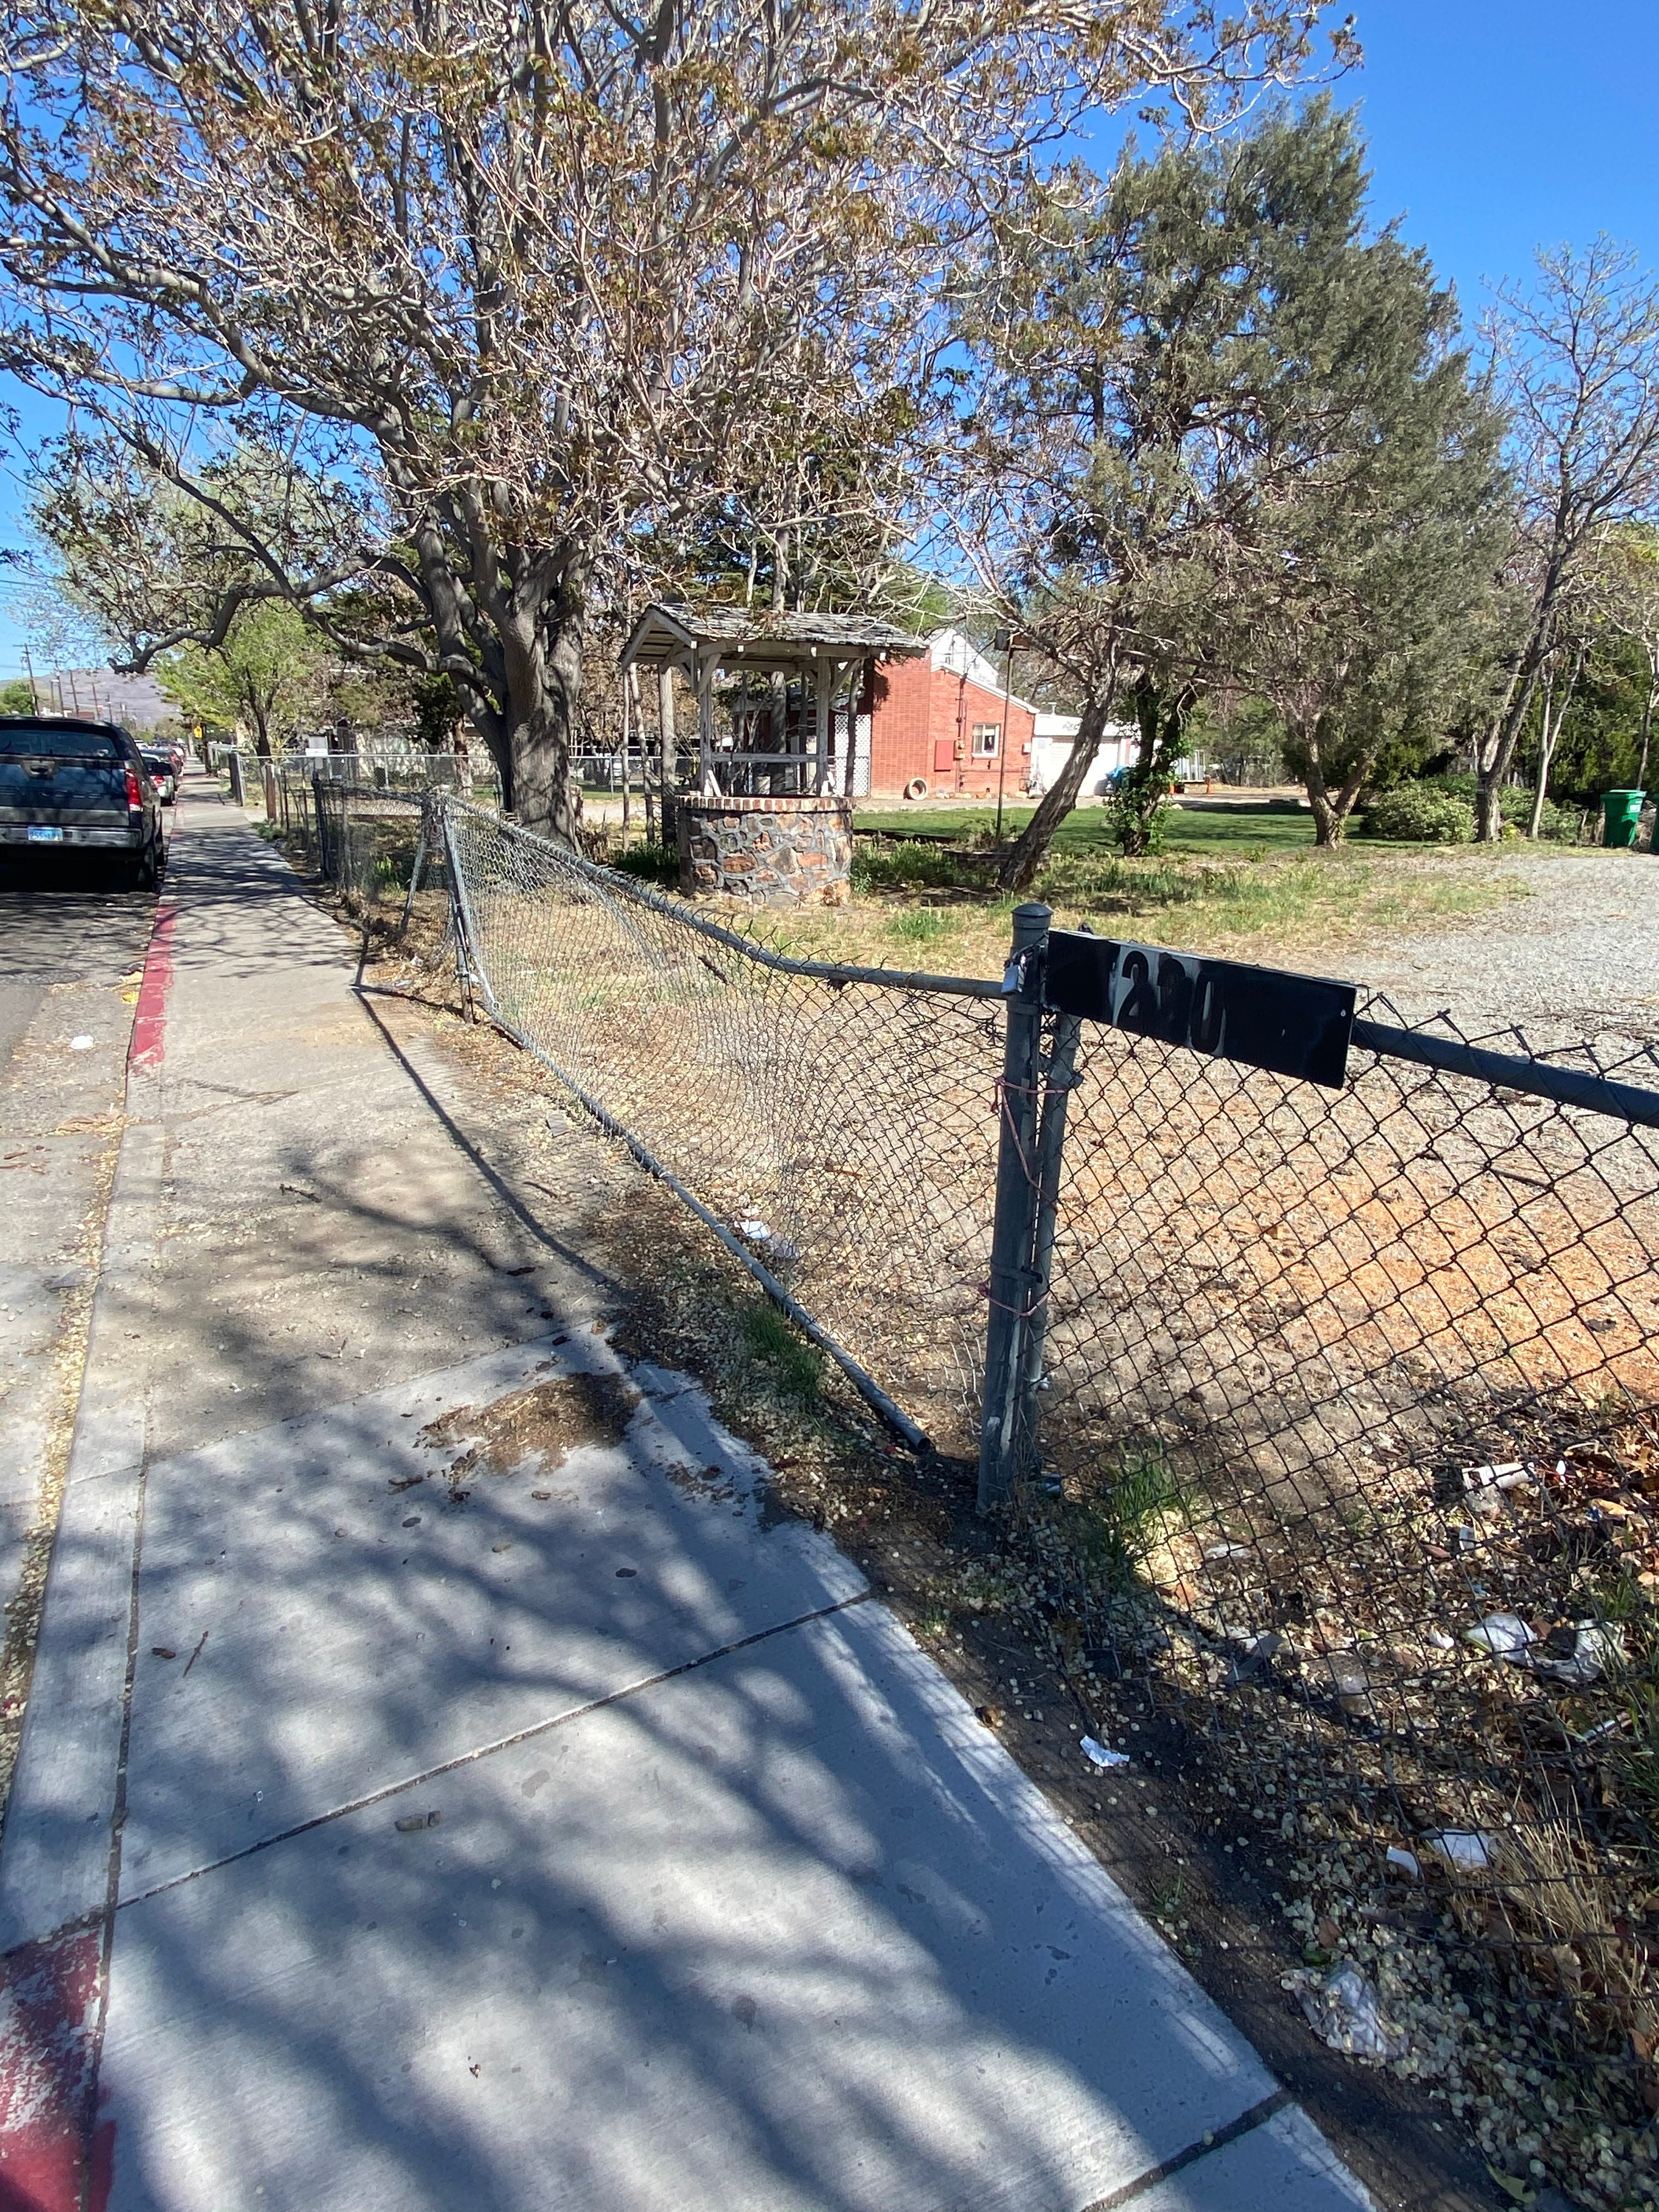 Neighbors in the 200 block of Grove Street say a man crashed into this fence after being fatally shot Friday, April 30. The Washoe County Regional Medical Examiner's Office later identified the man as Marco Avalos Telles, 24.